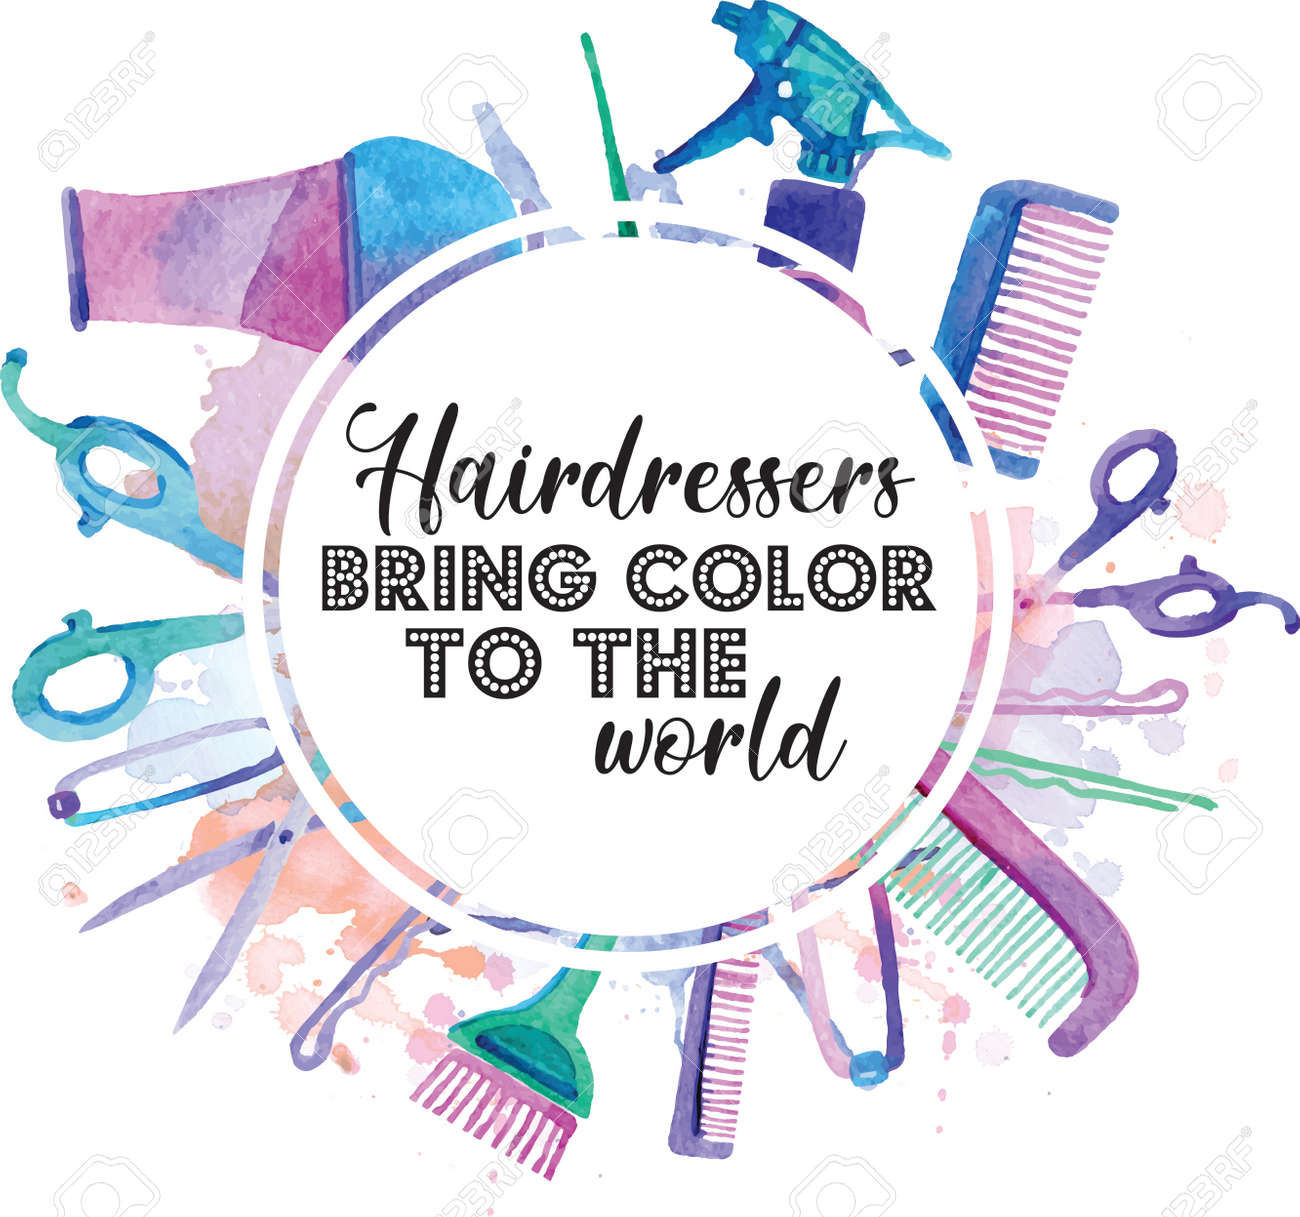 Hairdresser Bring Color To The World quote on white background. Vector illustration. - 159336142